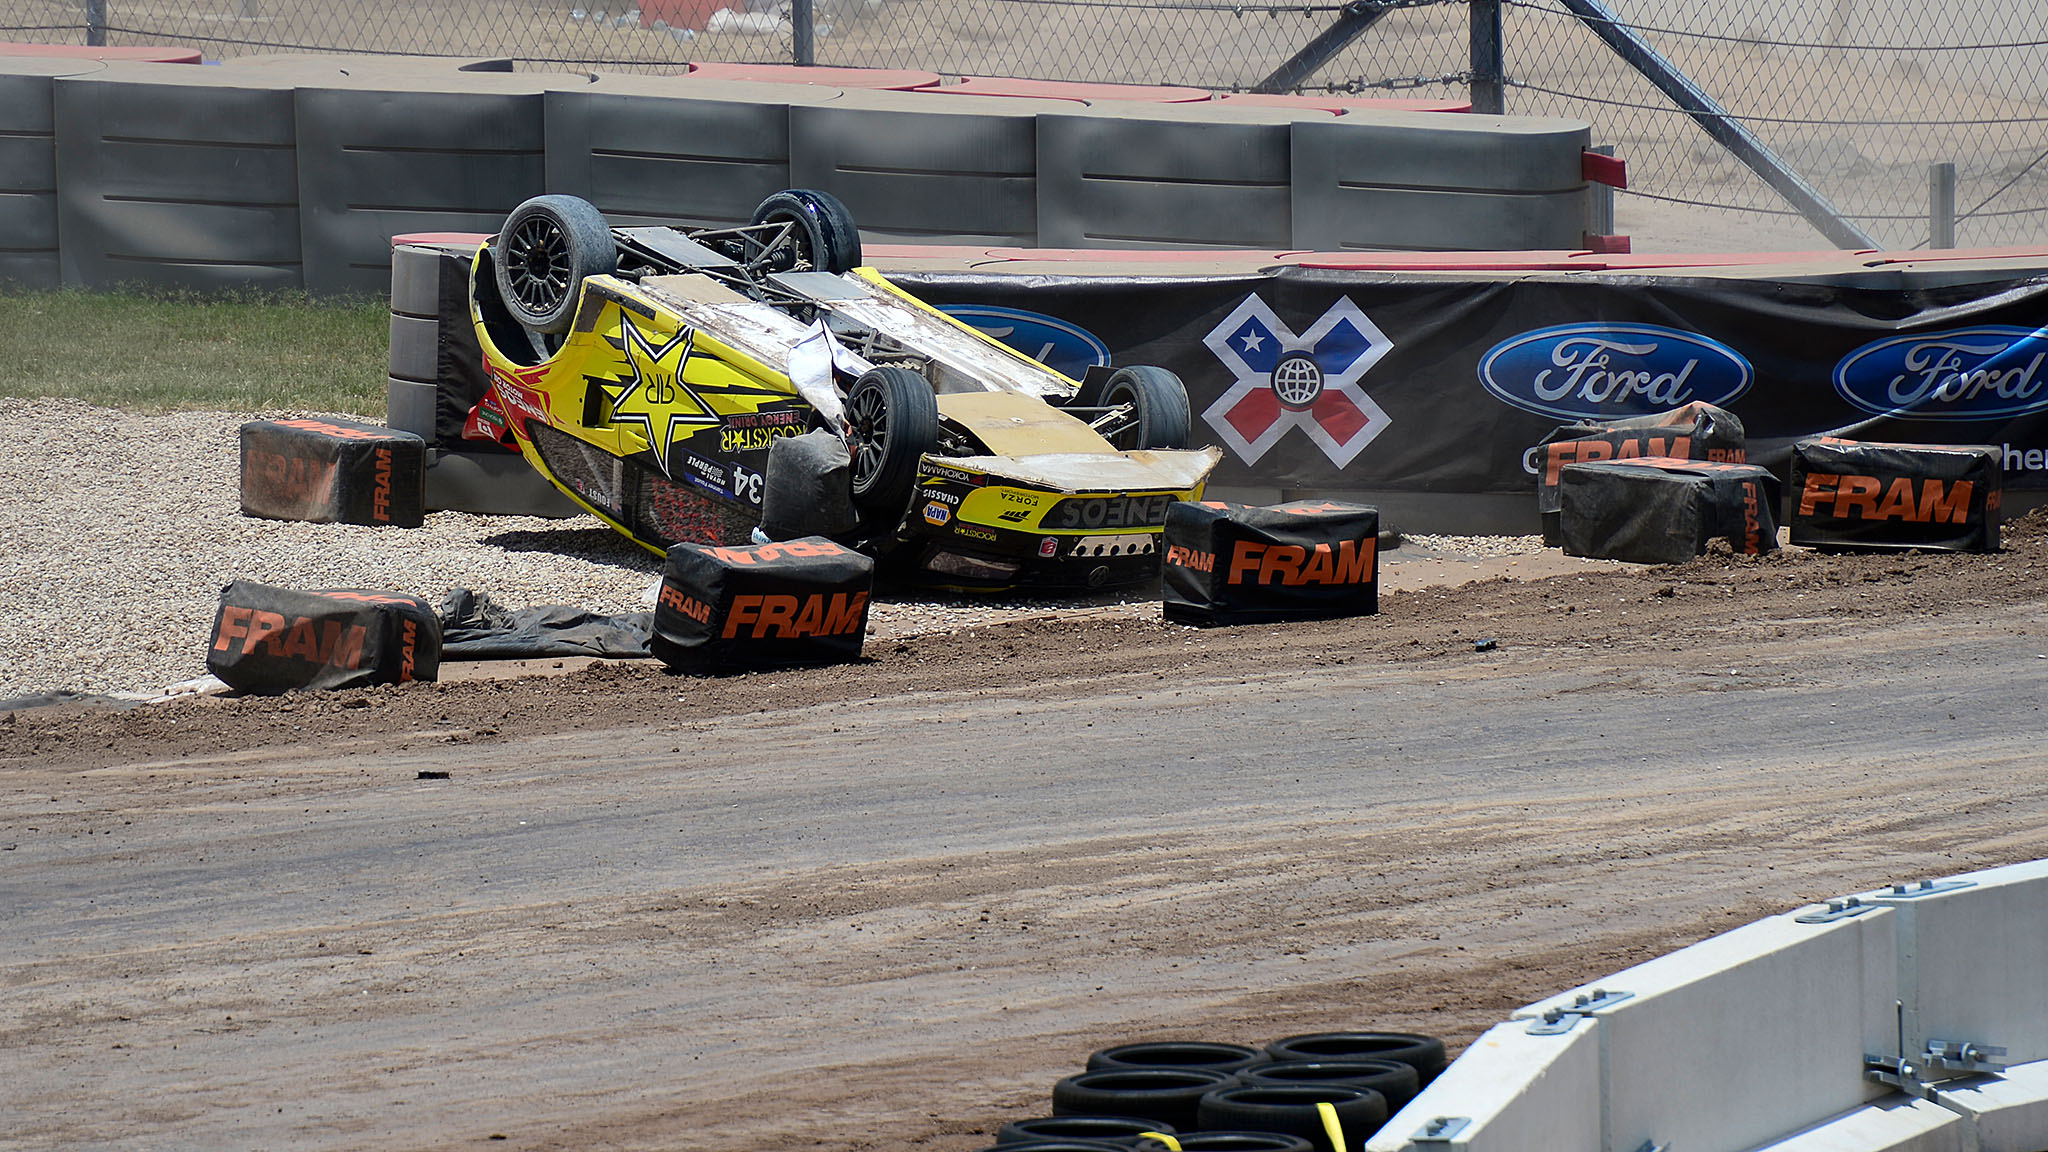 Typically a finalist in the field of RallyCross at X Games, Tanner Foust took the first corner turn too tight during quarterfinals in RallyCross at X Games Austin and flipped his car. Foust was eliminated from X Games competition because of the crash. Foust emerged uninjured from the crash, but his chances for a gold medal in Austin were dashed.